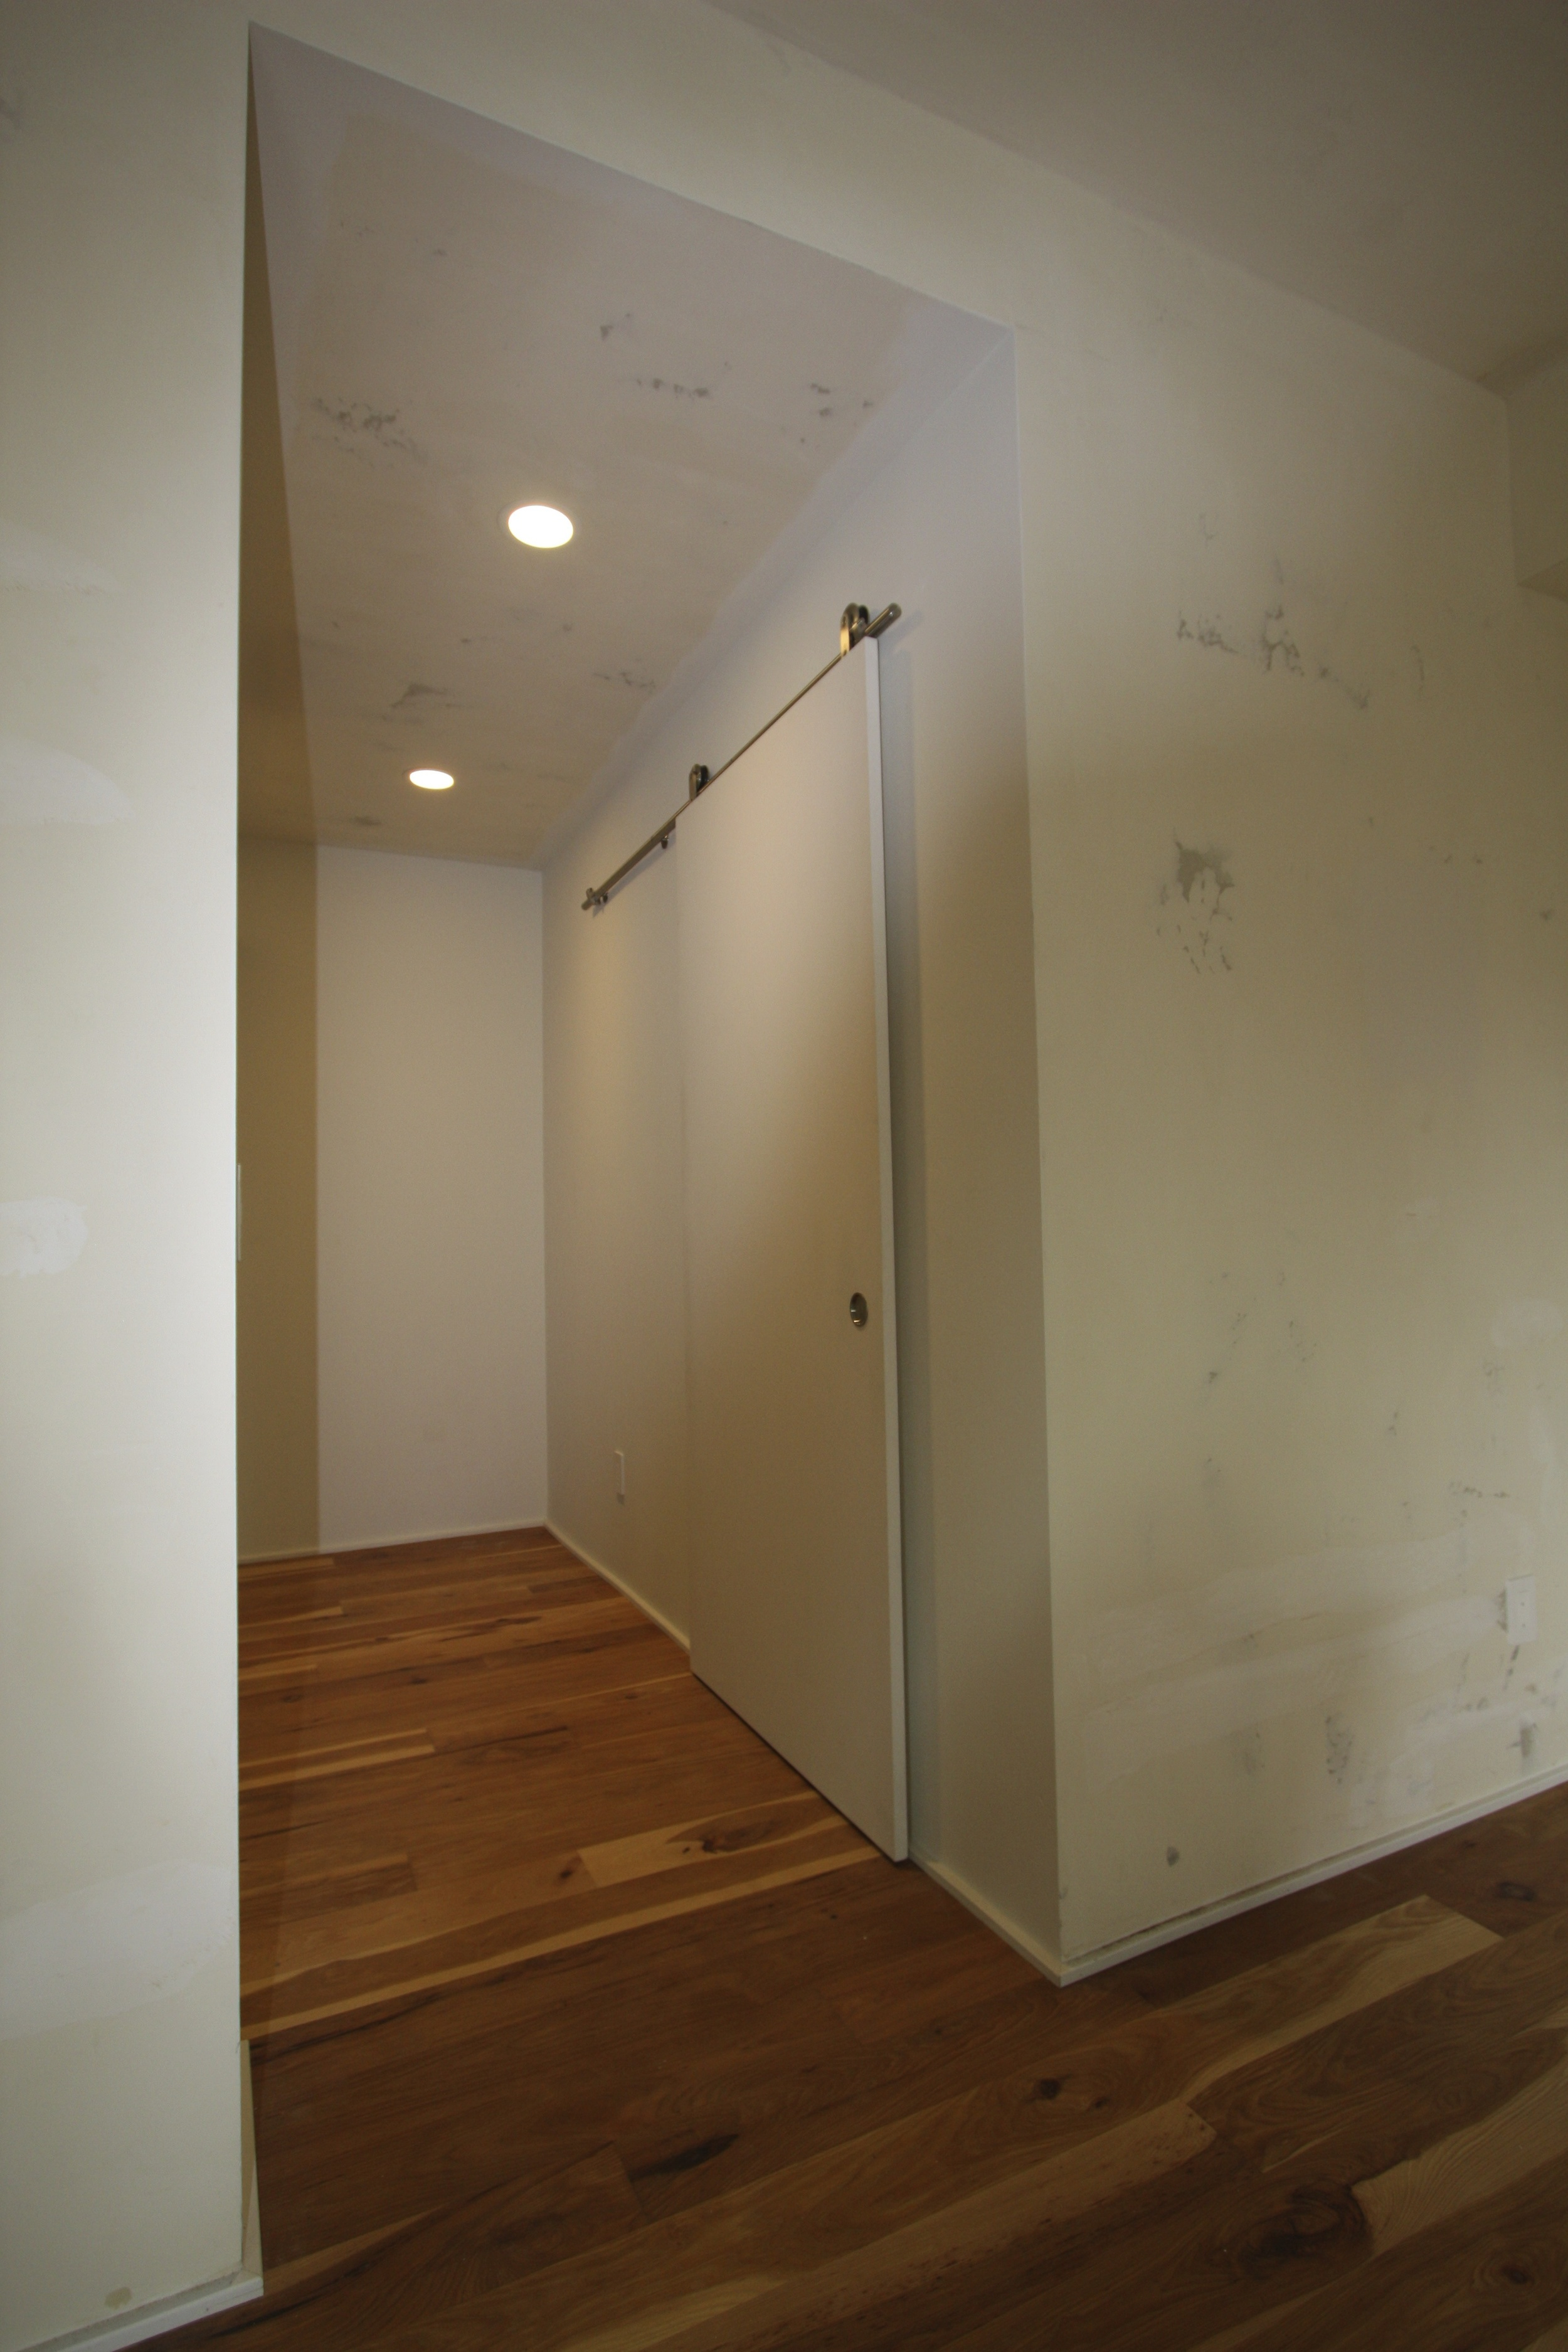 Hall accesses closet, laundry and bath. Sliding 'barn door' is seen here.